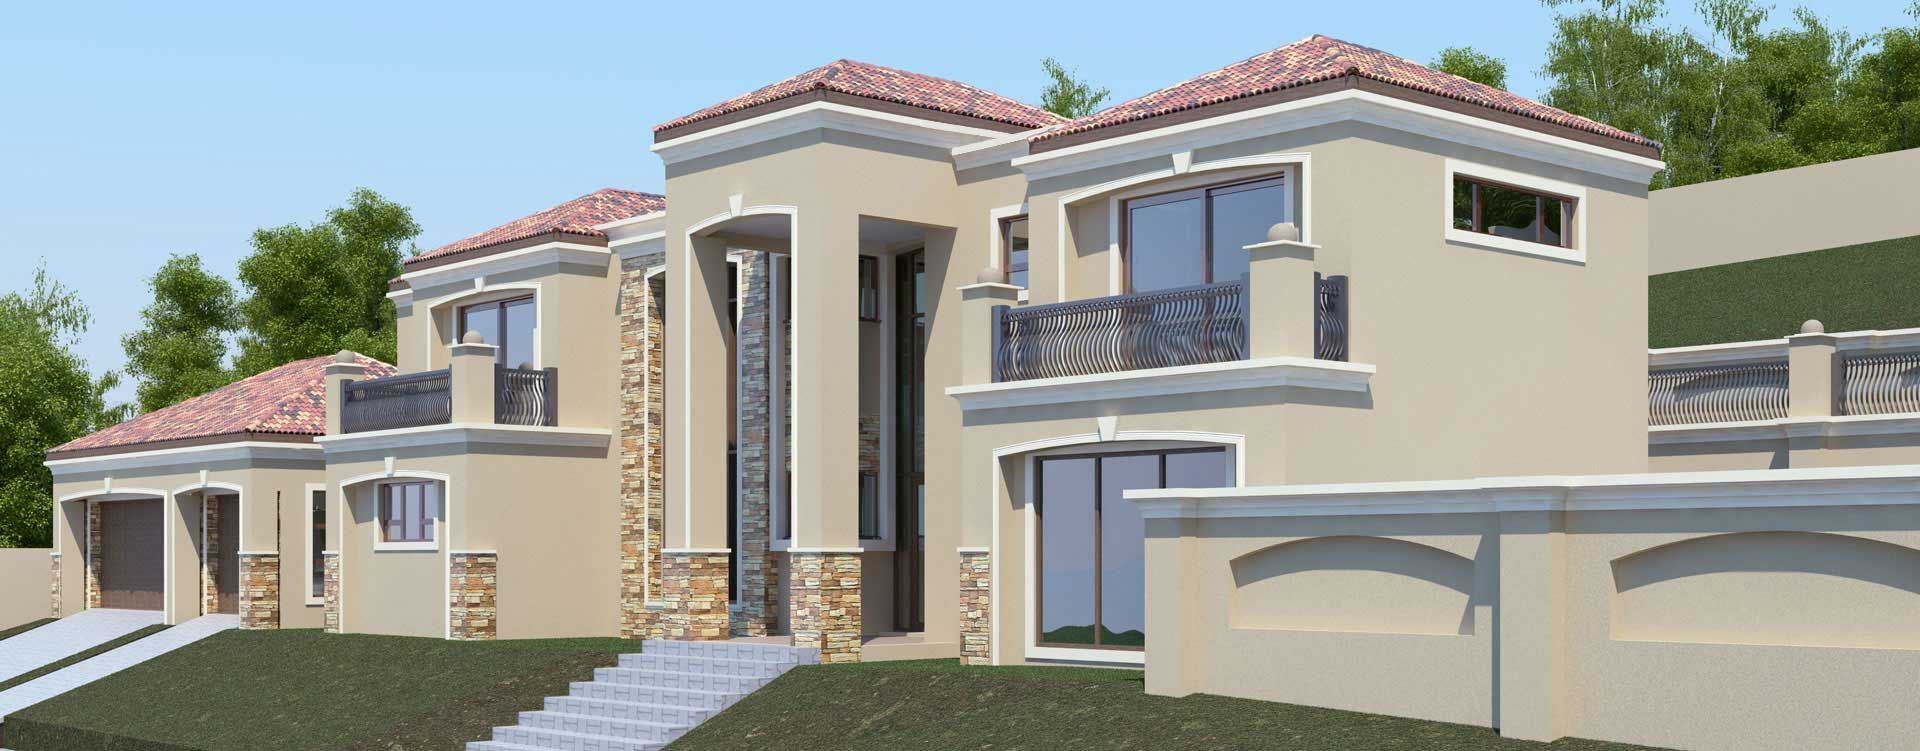 House · house designs and floor plans